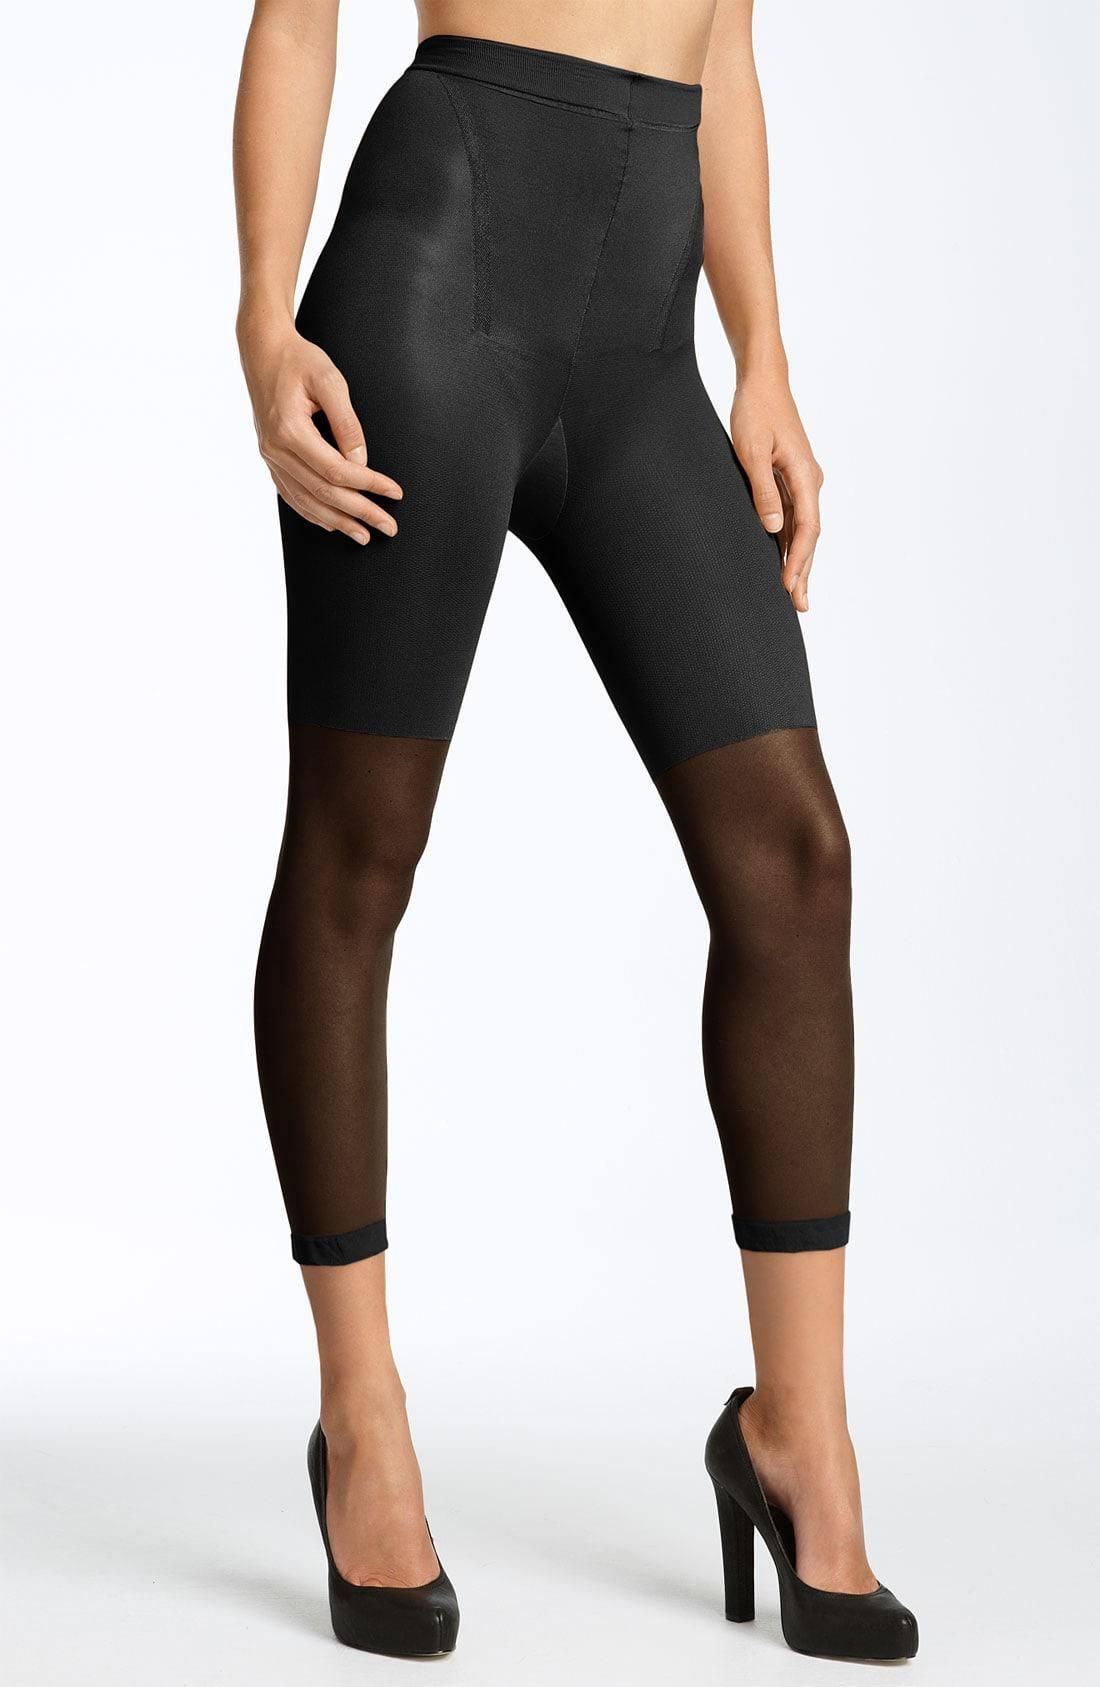 3aba311e70a Lyst - Spanx Spanx Power Capri Control Top Footless Pantyhose in Black